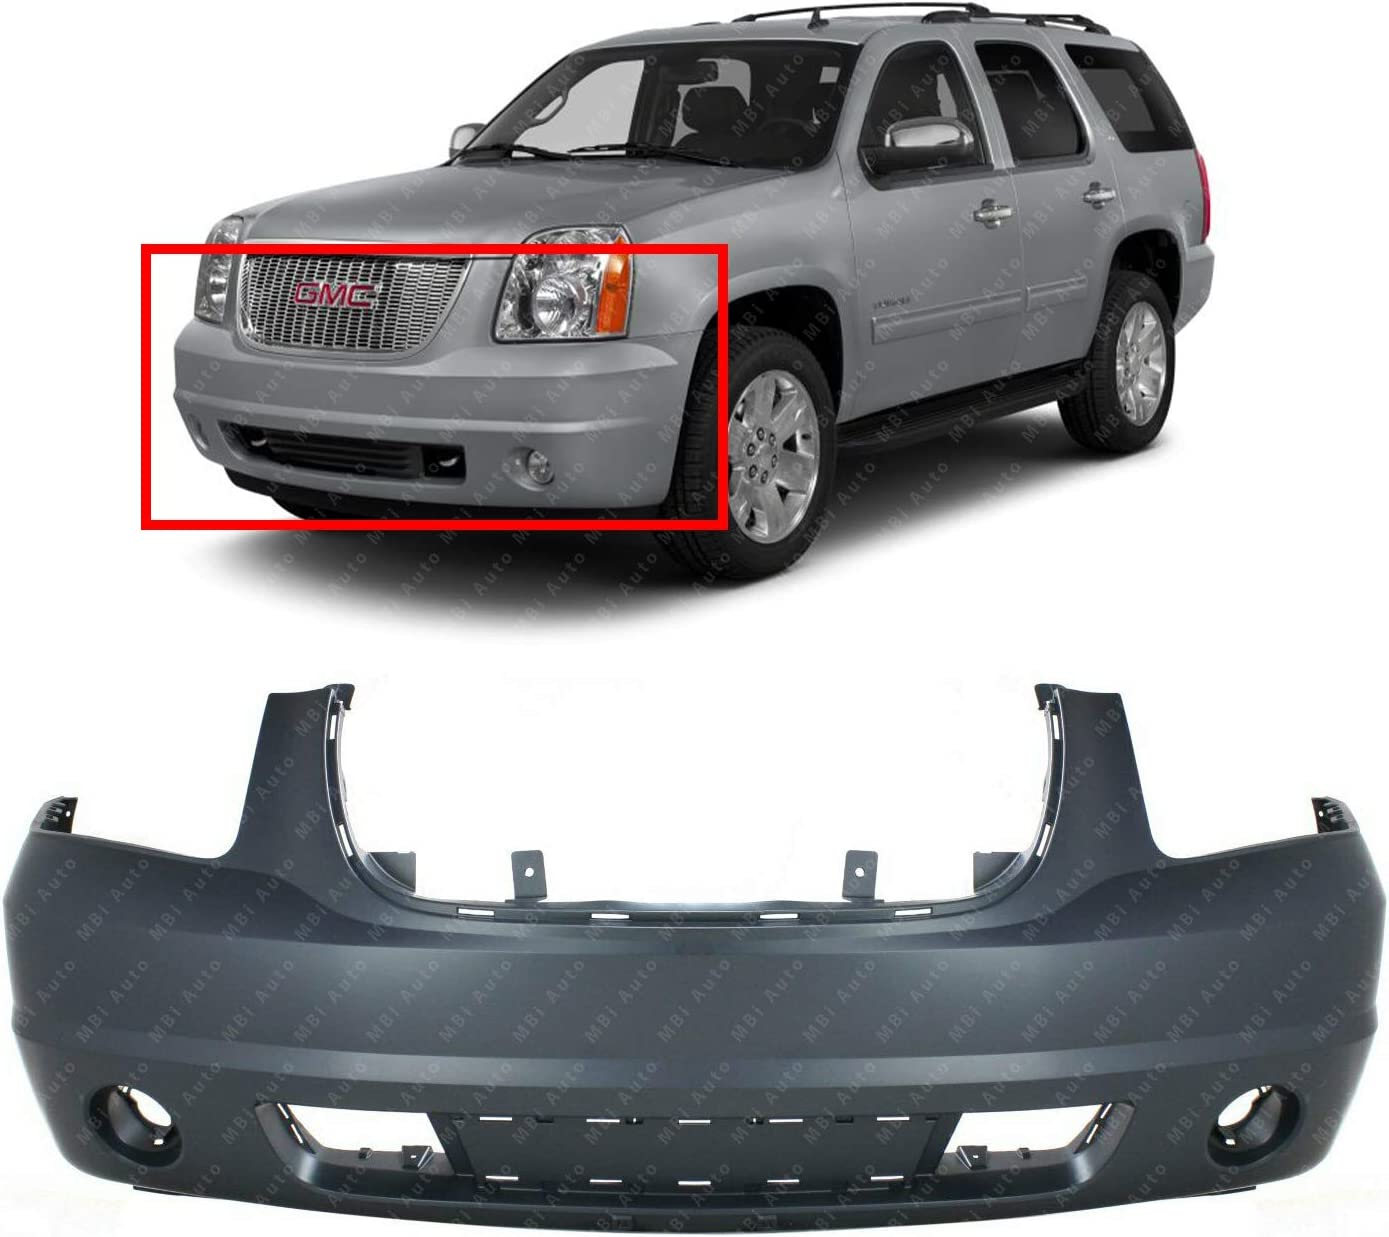 BUMPERS THAT DELIVER GM1000818 Front Bumper Cover Fascia for 2007-2014 GMC Yukon SUV 07-14 Primered